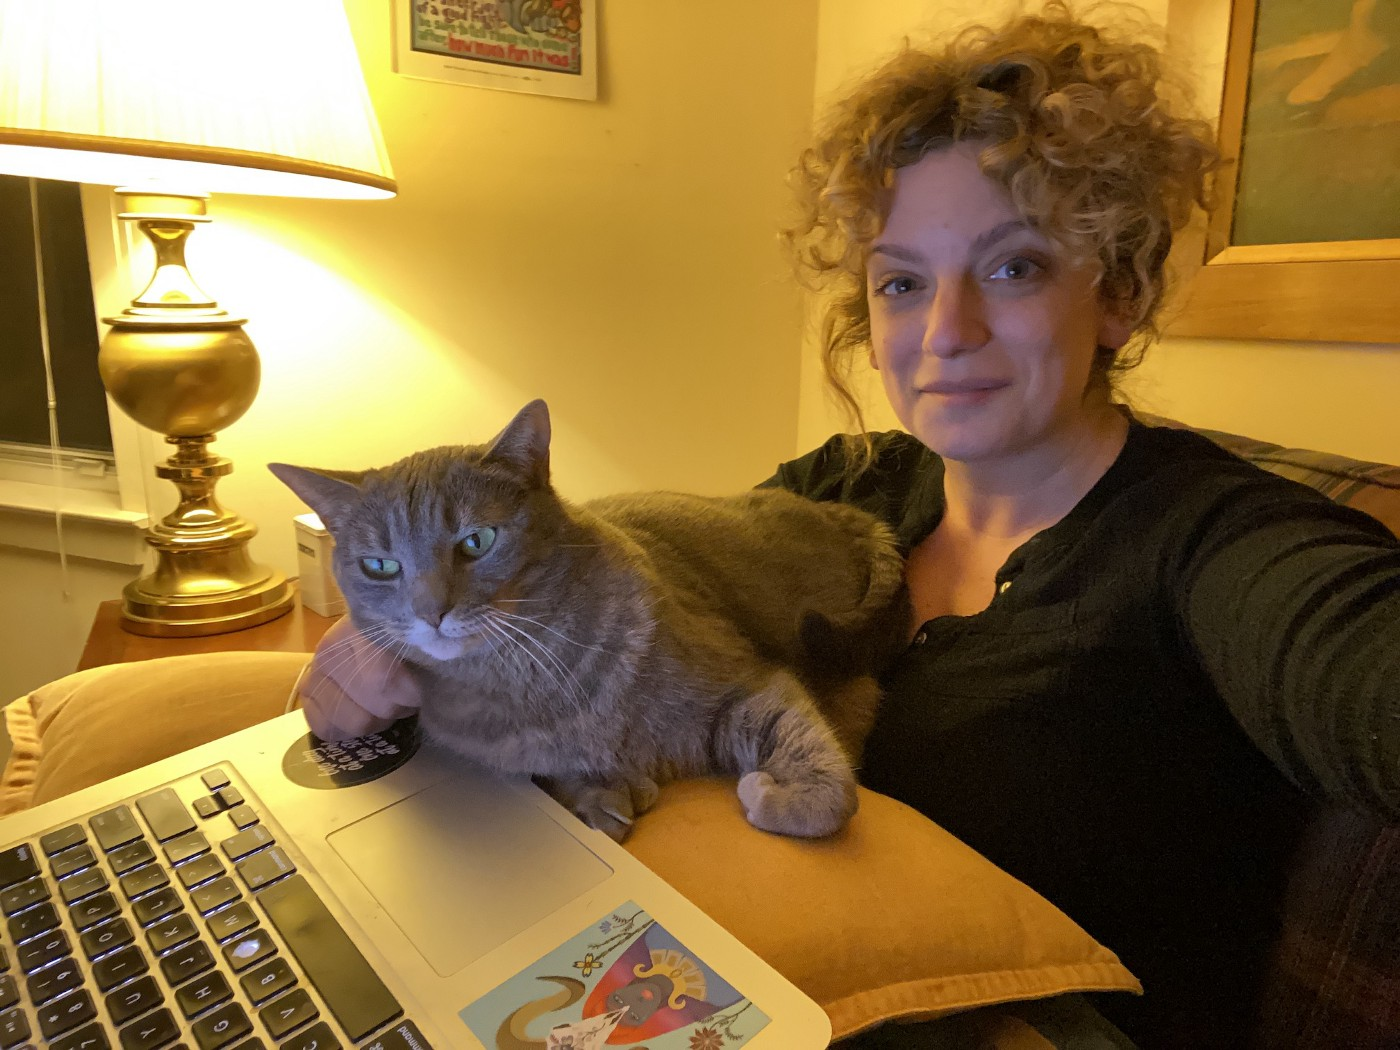 The author and her large grey cat, who has green eyes, sitting on a couch with a laptop, which the cat surely does not wish for her to access